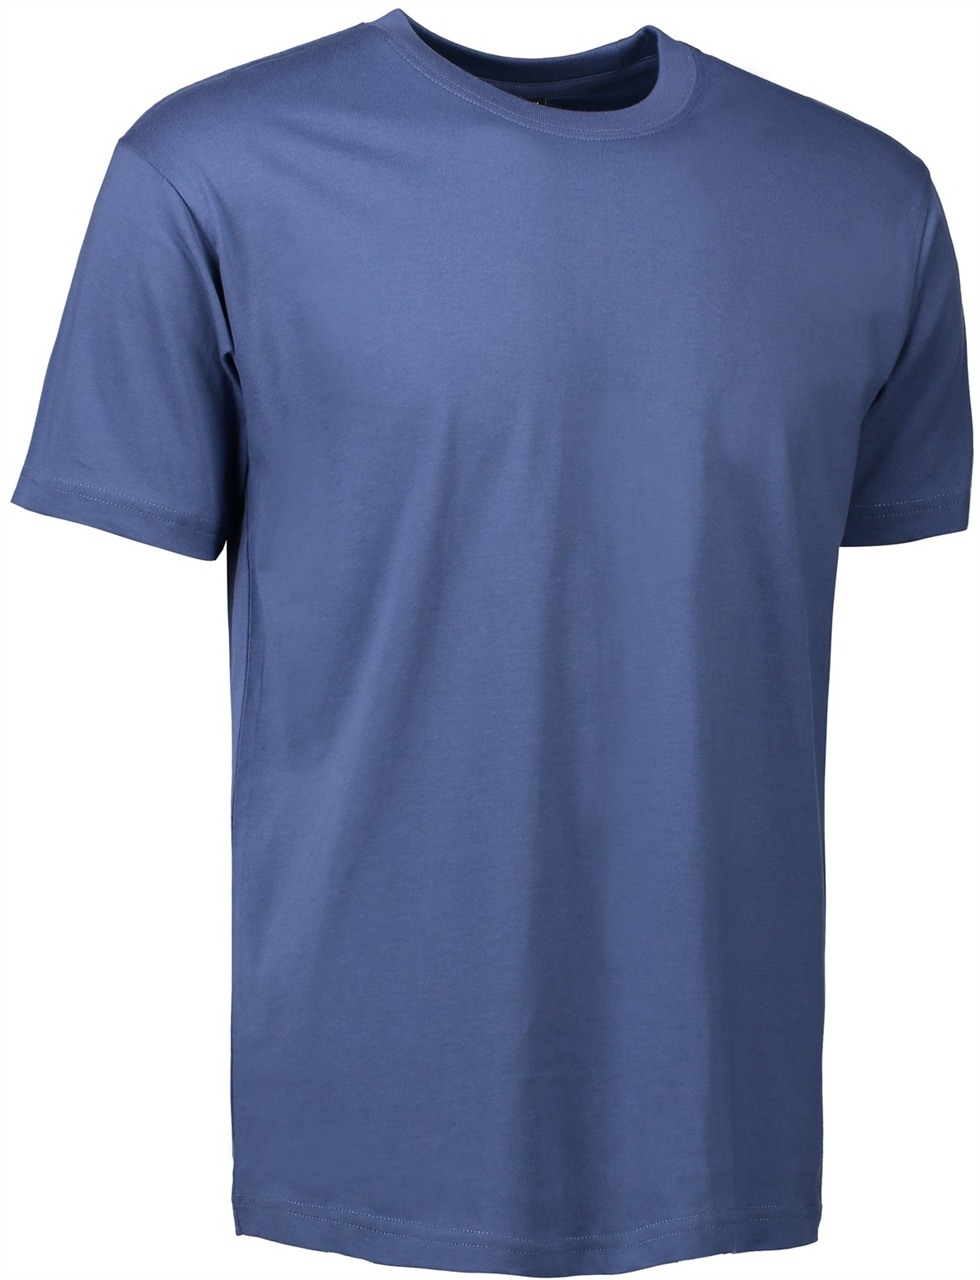 Picture of T-time t-shirt 0510 Indigo